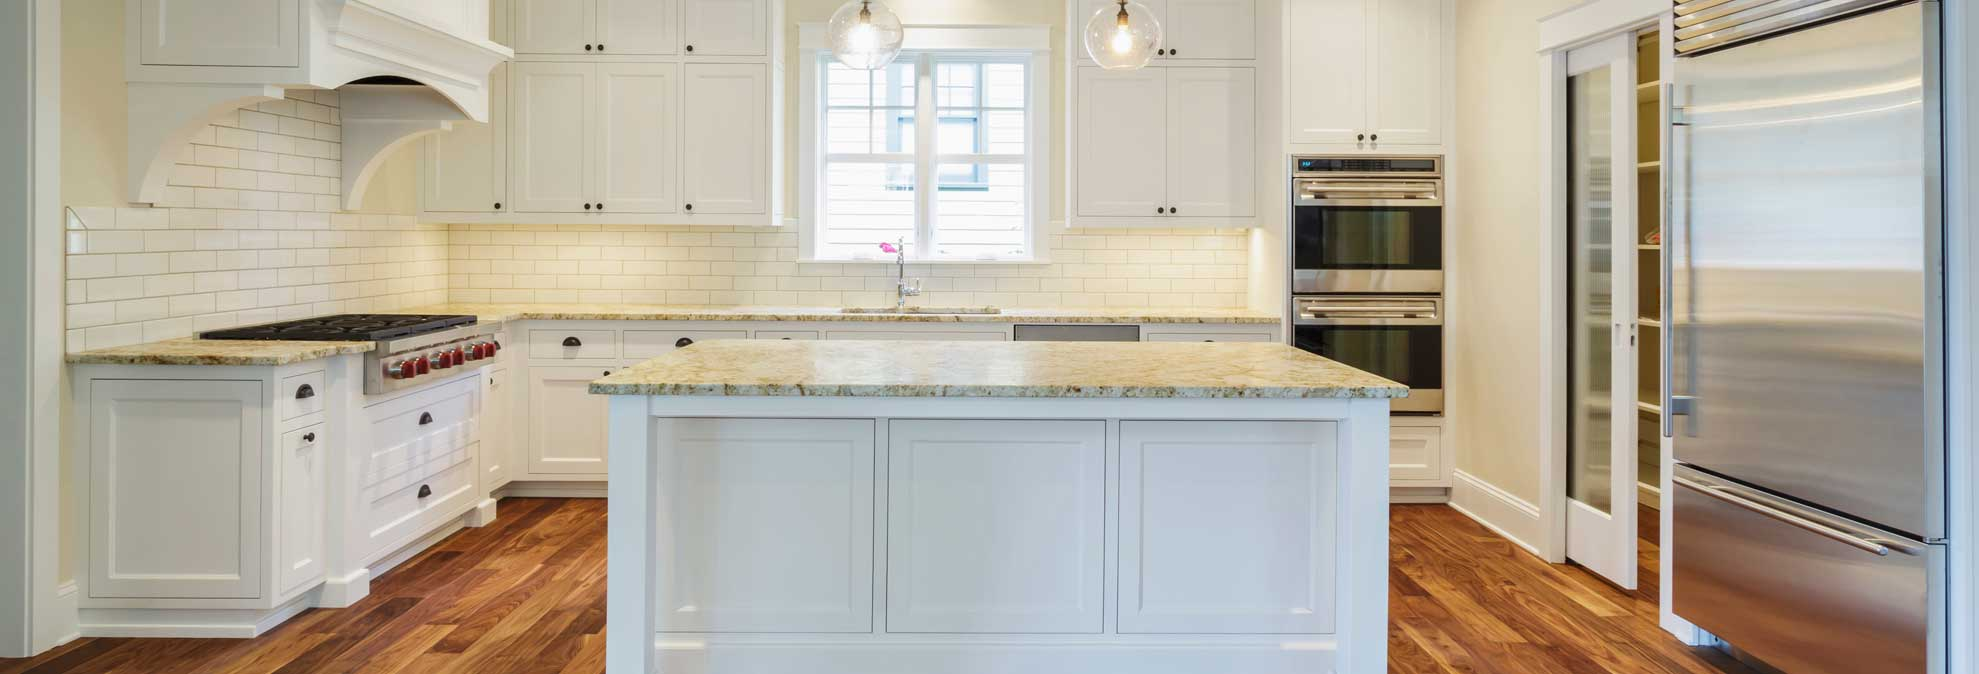 kitchen remodel mistakes that will bust your budget consumer reports